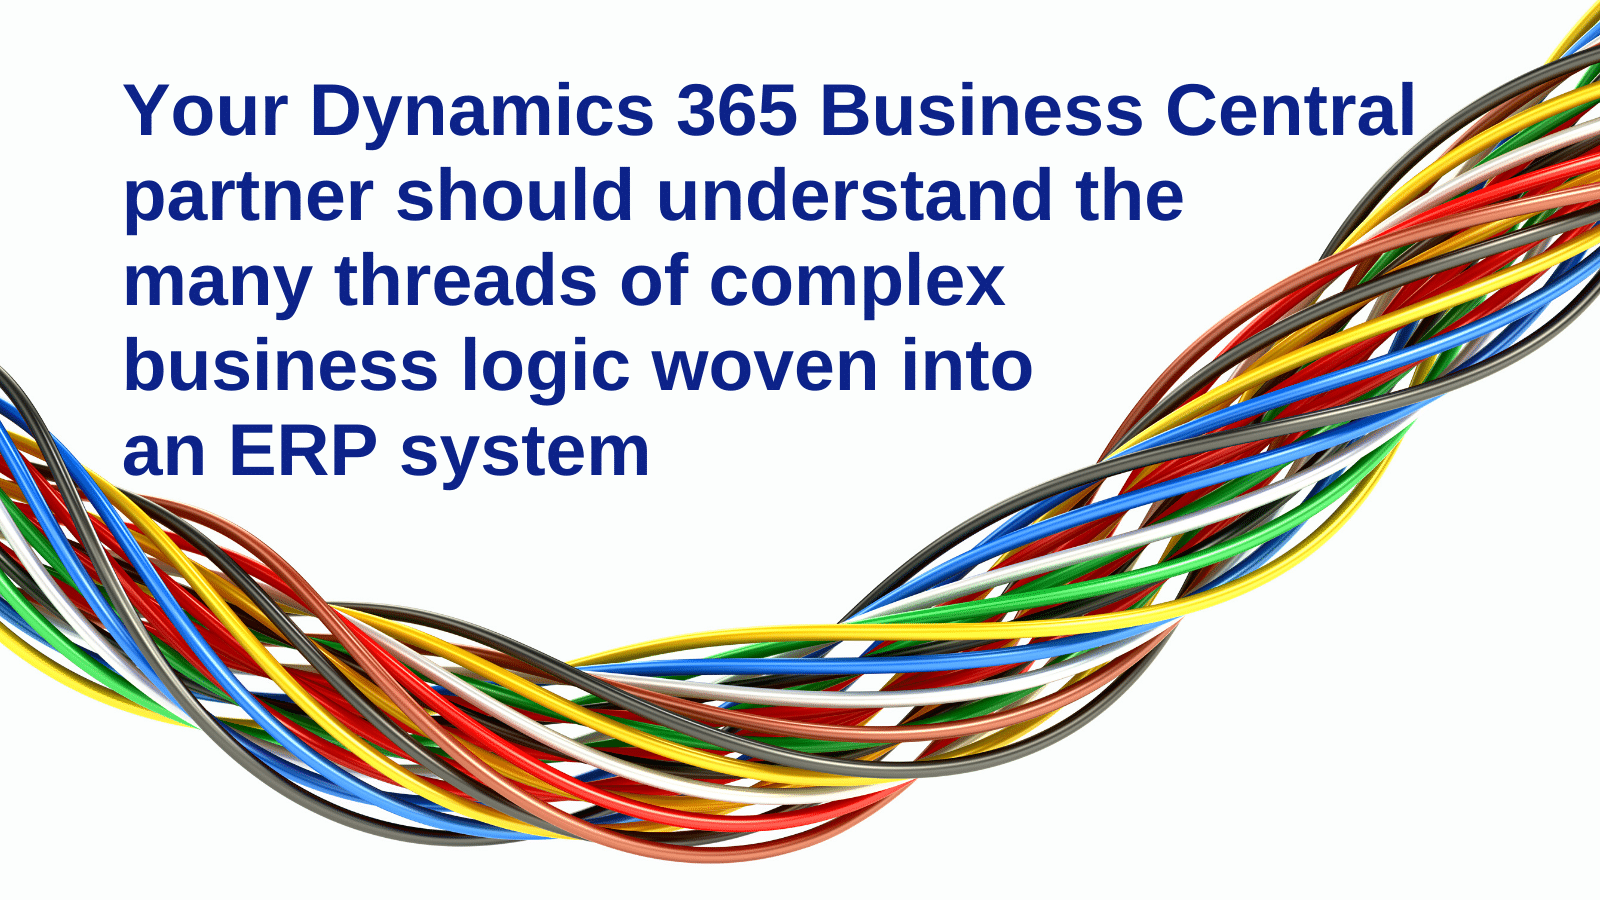 Your Dynamics 365 Business Central partner should understand the many threads of complex business logic woven into an ERP system.